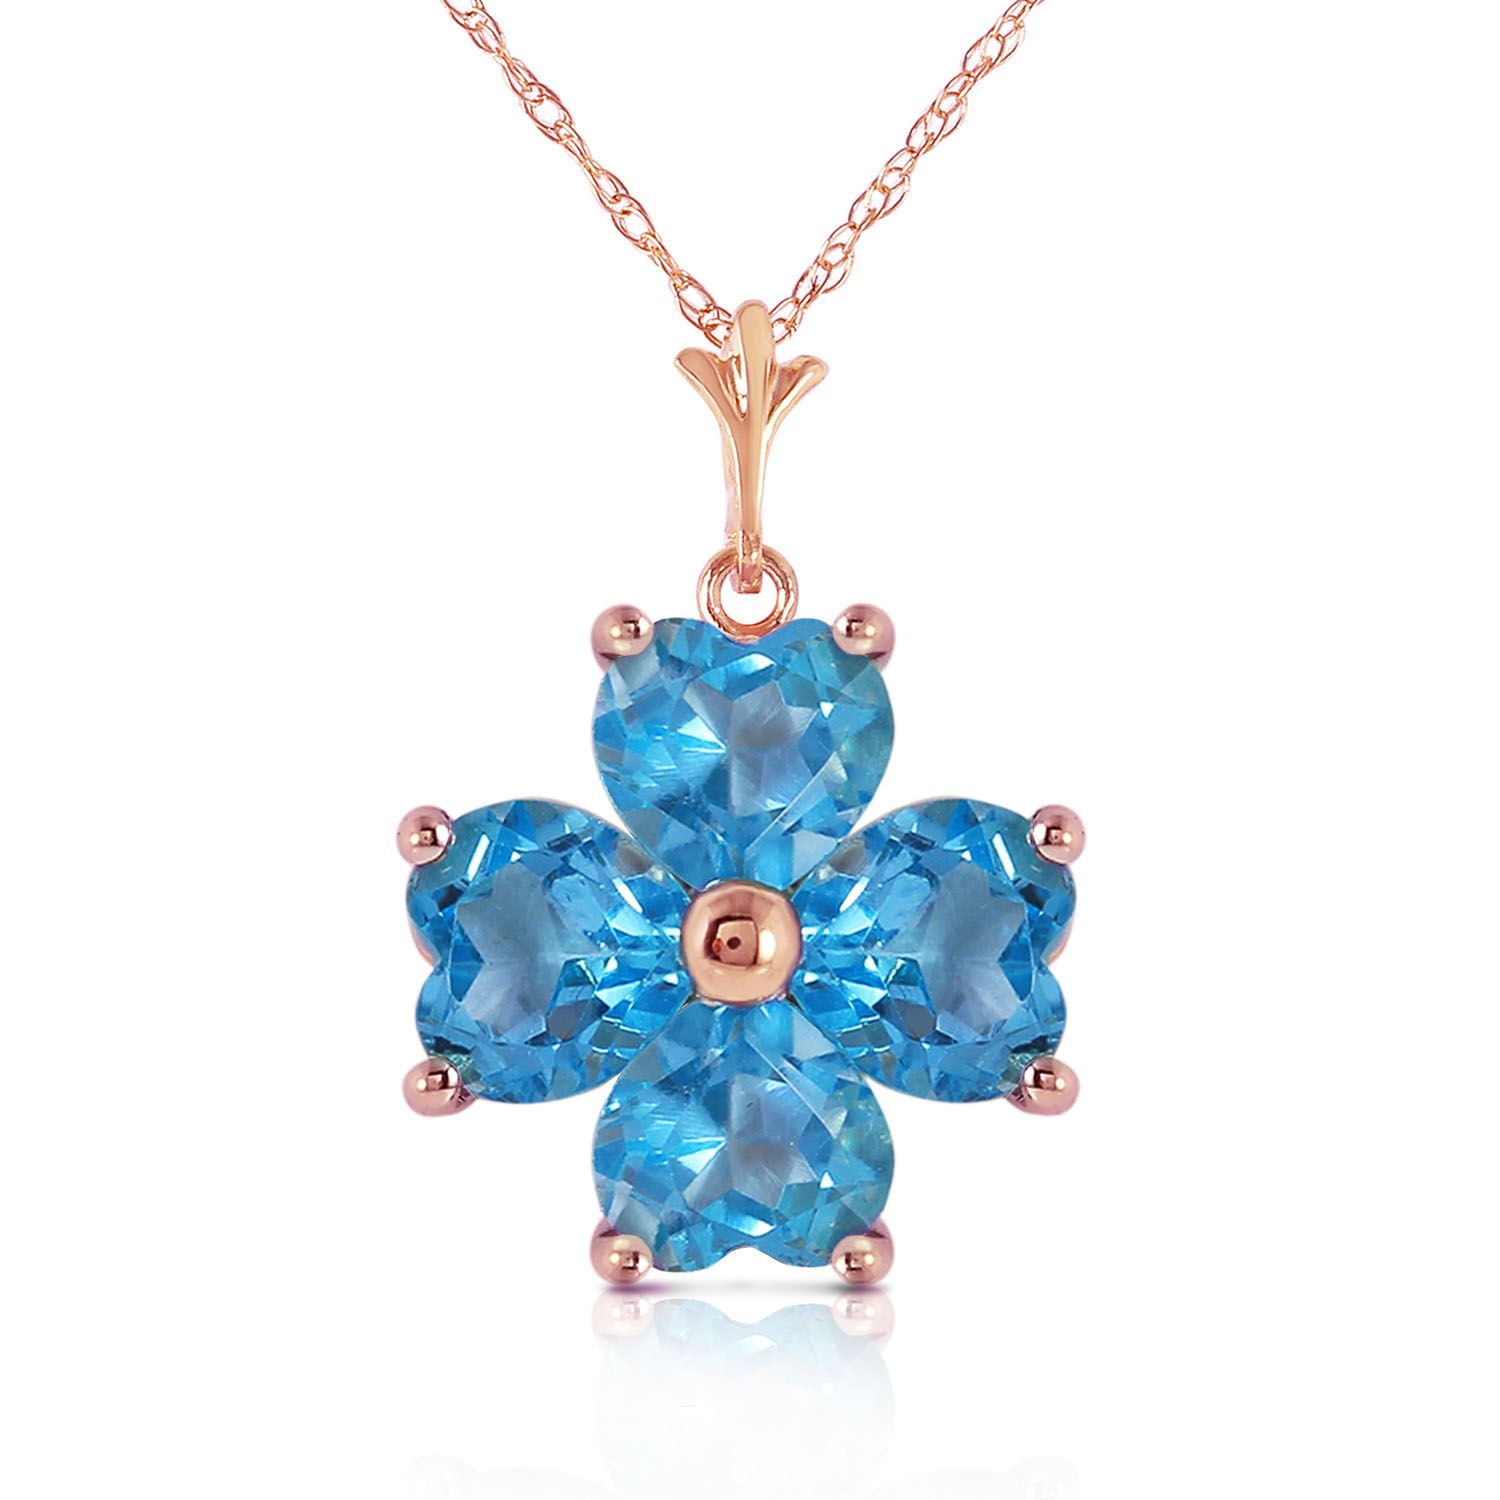 ALARRI 14K Solid Rose Gold Necklace w// Natural Blue Topaz with 22 Inch Chain Length